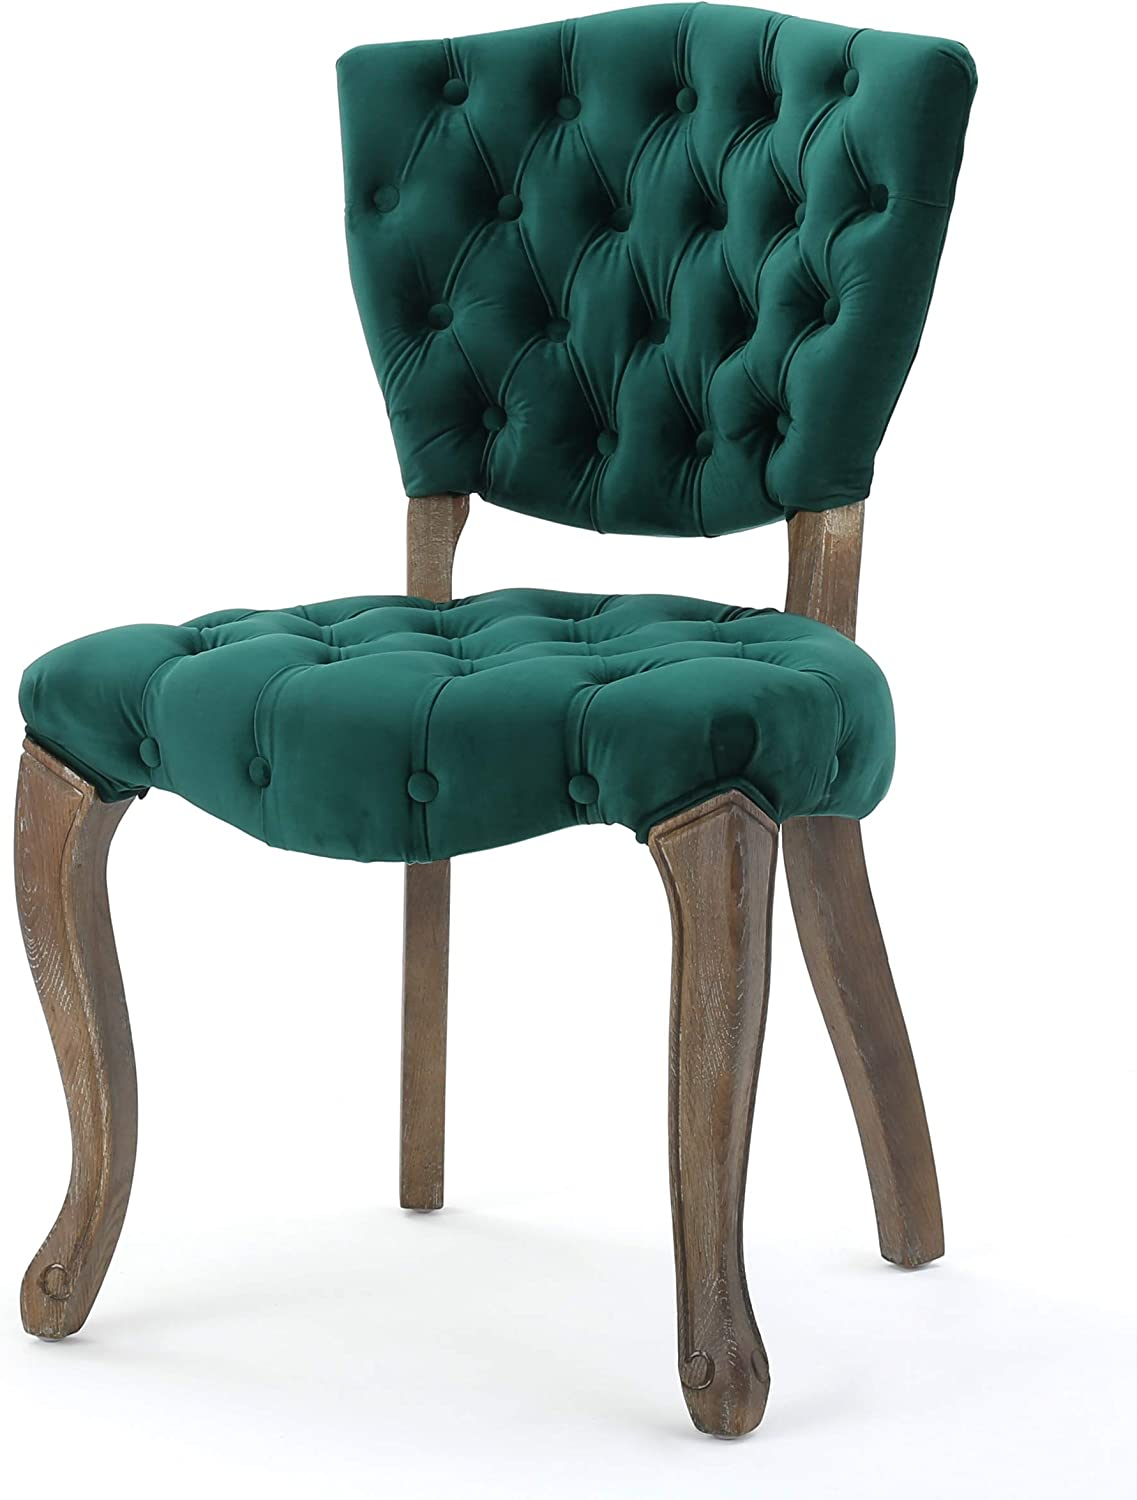 Amazon Com Christopher Knight Home Bates Tufted Velvet Fabric Dining Chairs 2 Pcs Set Dark Green Chairs